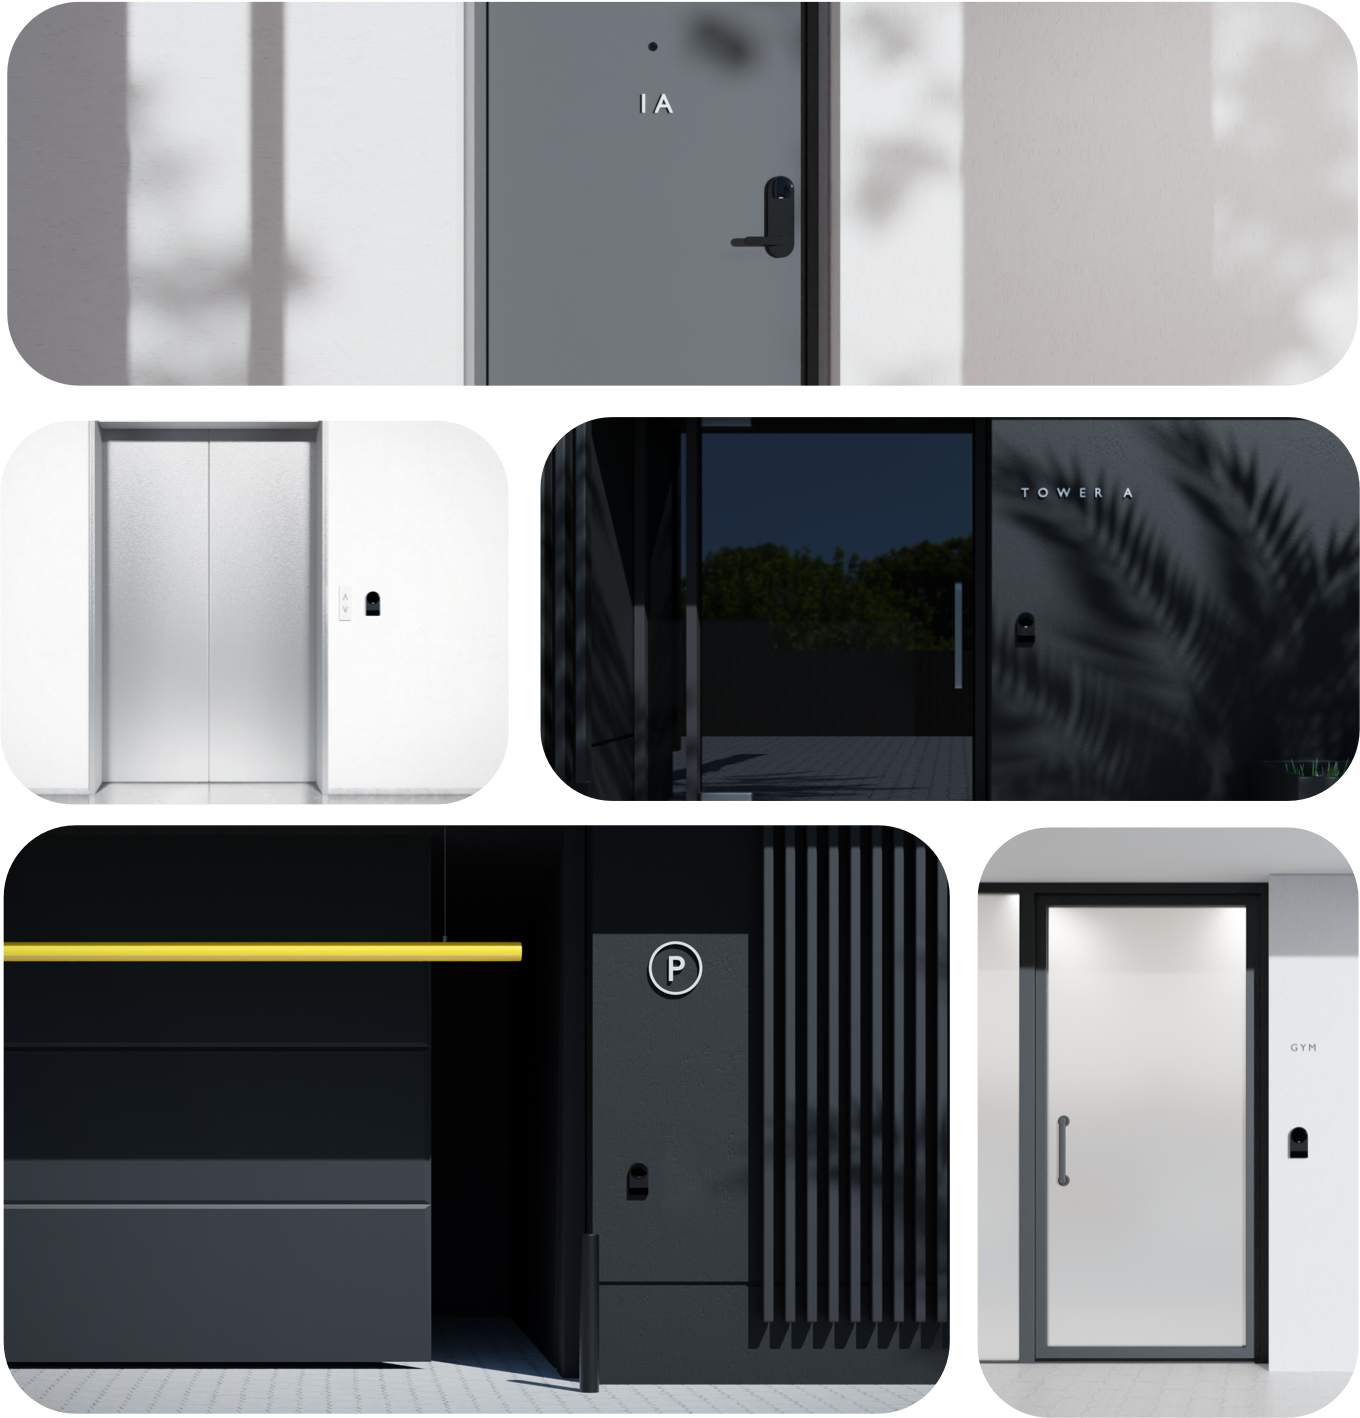 A collage of different types of doors like apartment entrances, unit doors, and garage spaces with Latch locks.